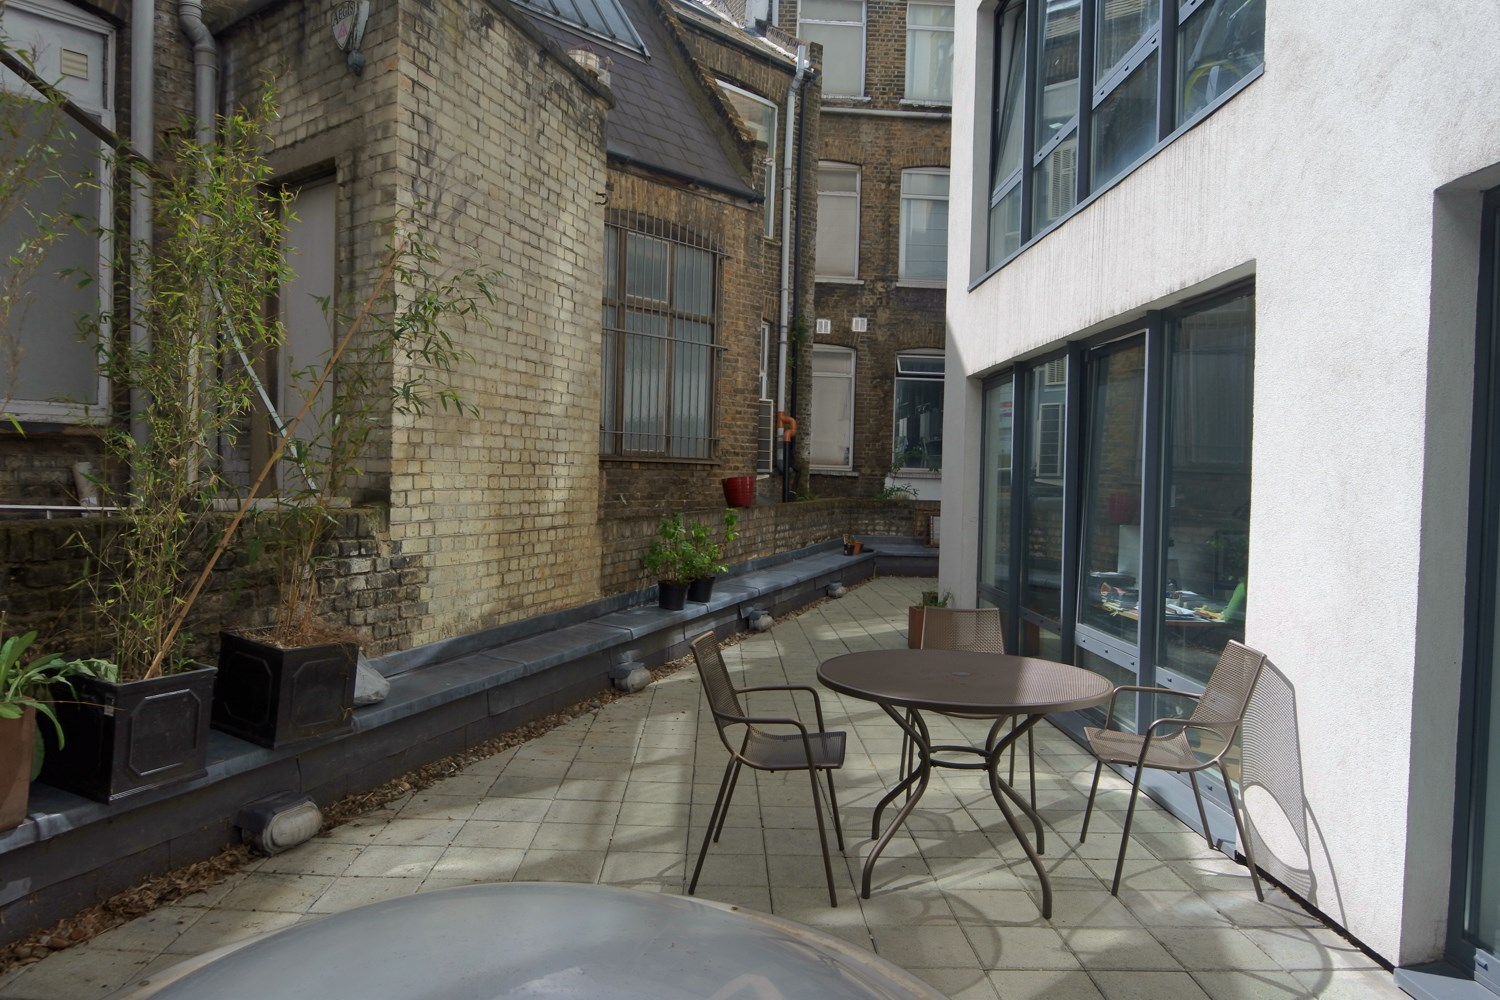 81 Curtain Road Shoreditch EC2A 3BS Office For Rent Roofterrace